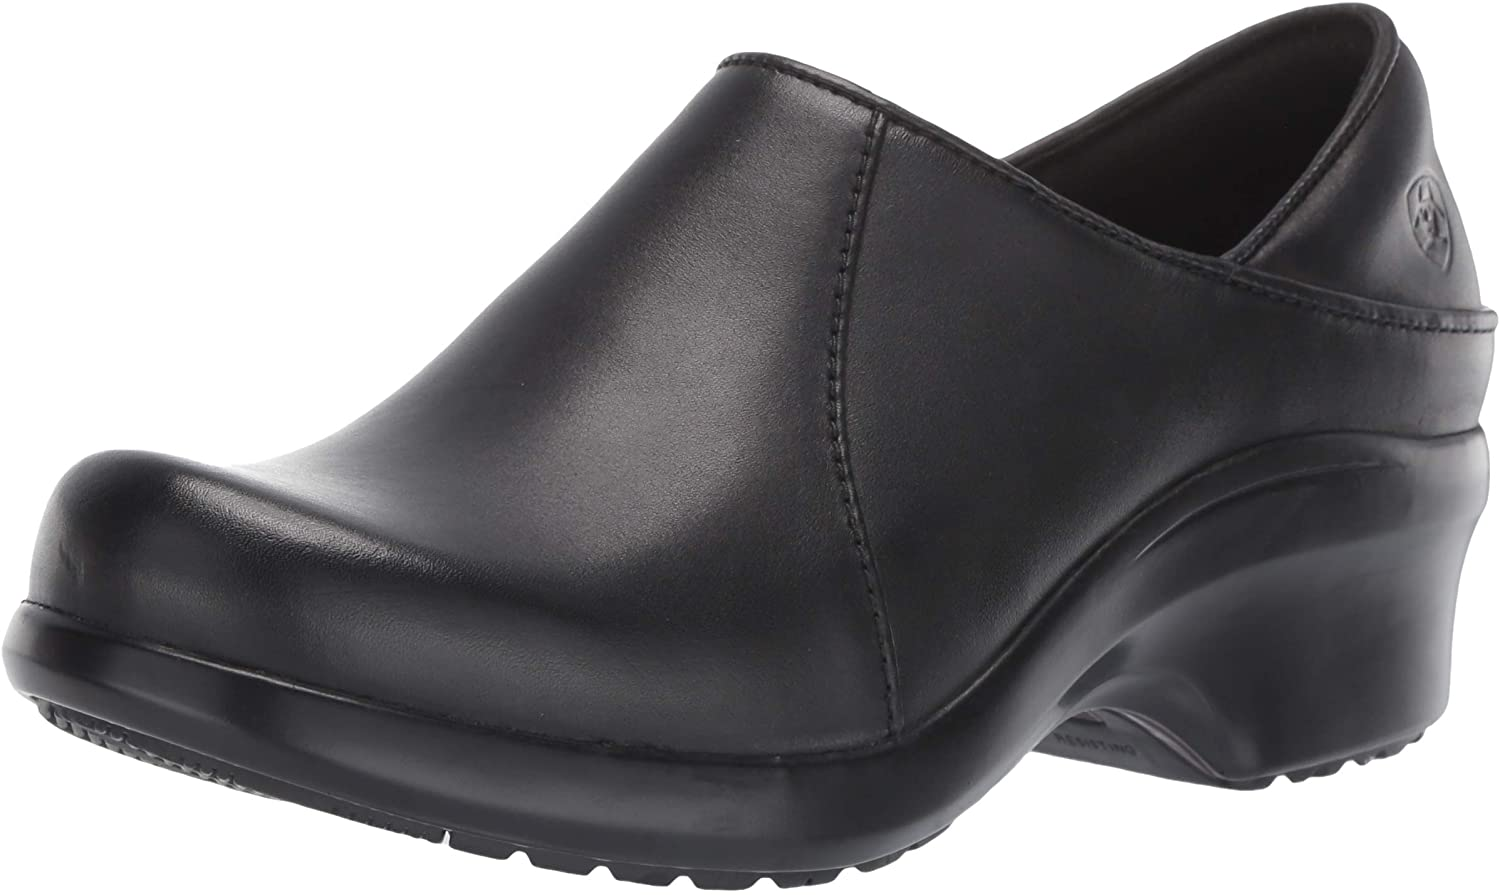 Ariat Women's Hera Clog Sales for sale Sales for sale Leather Expert